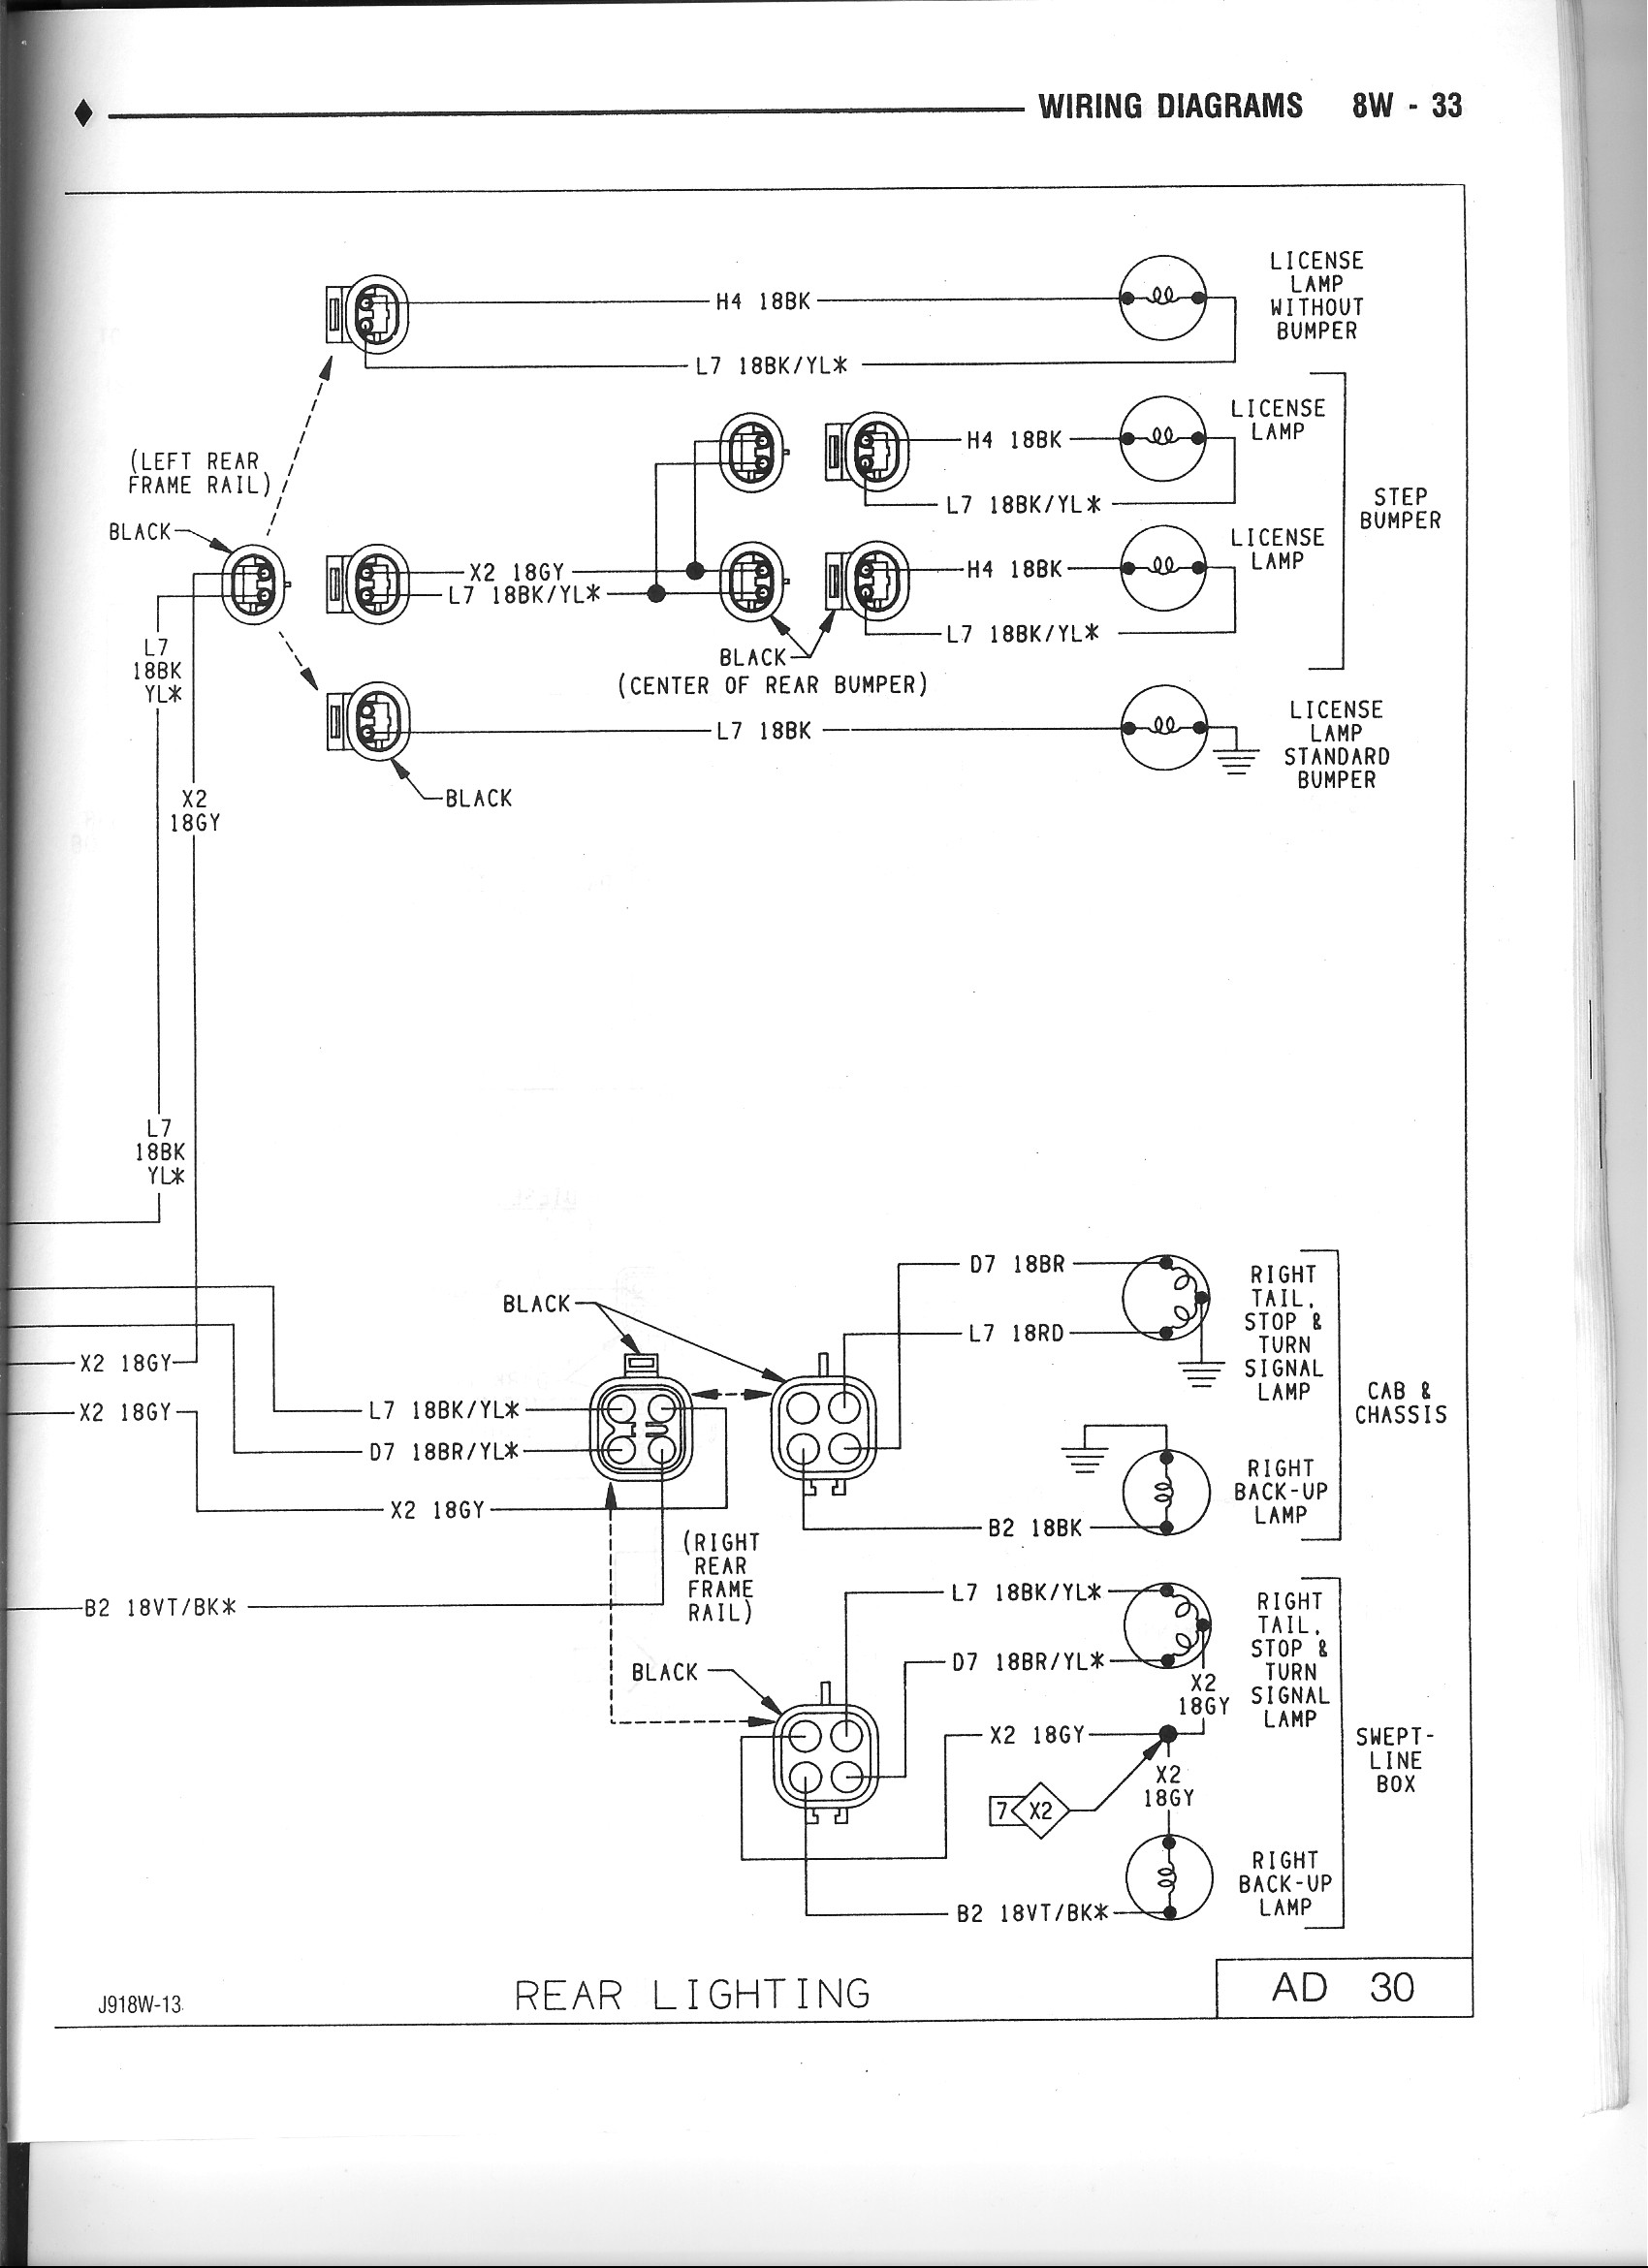 dodge d350 wiring harness information schematics wiring diagrams 1993 Dodge D350 Safety Rating